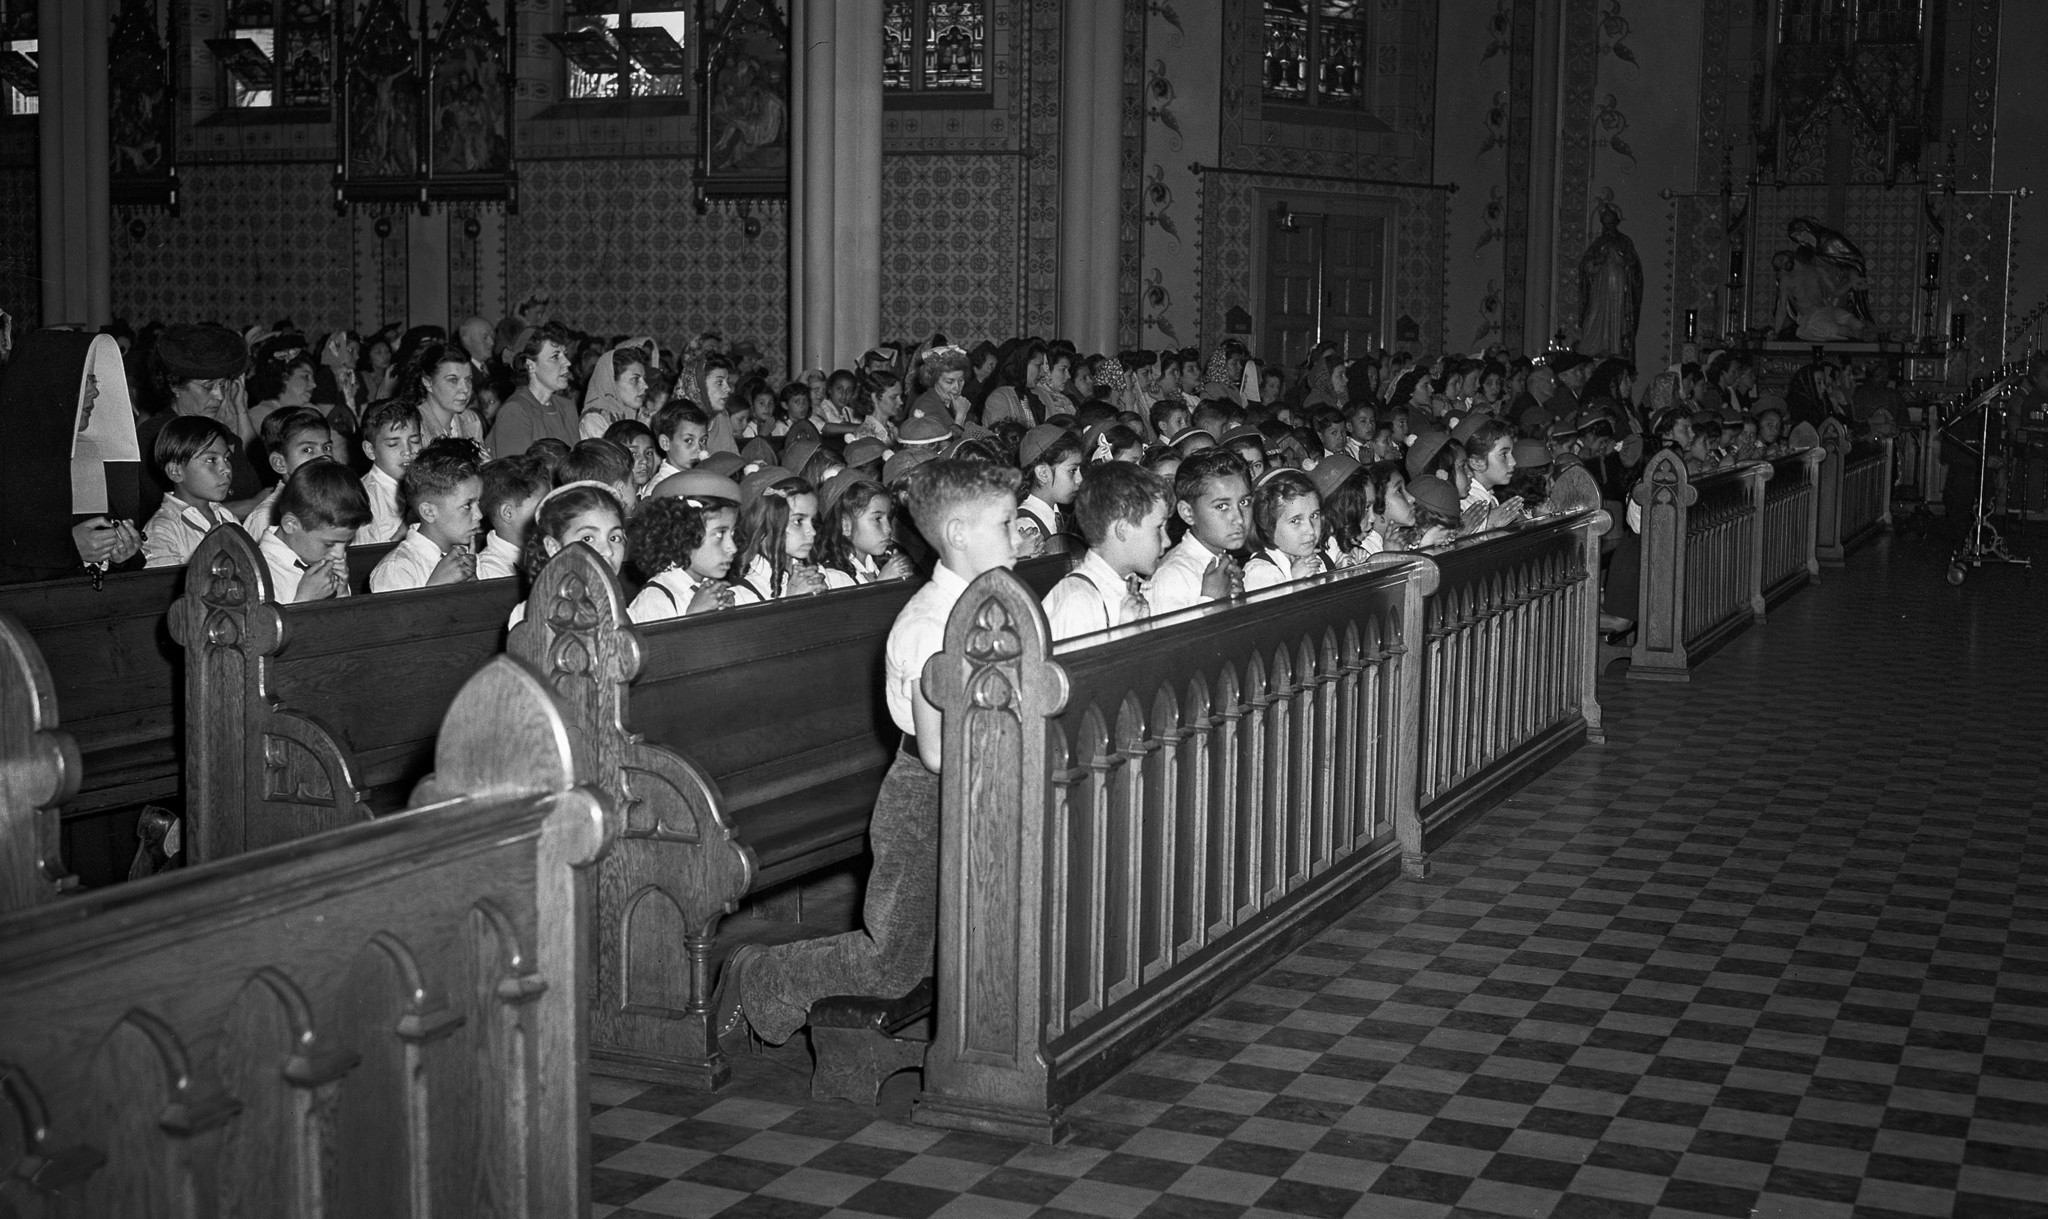 June 6, 1944: Children in prayer at noon on D-Day at St. Josephs Church located at 12th and Los Ange